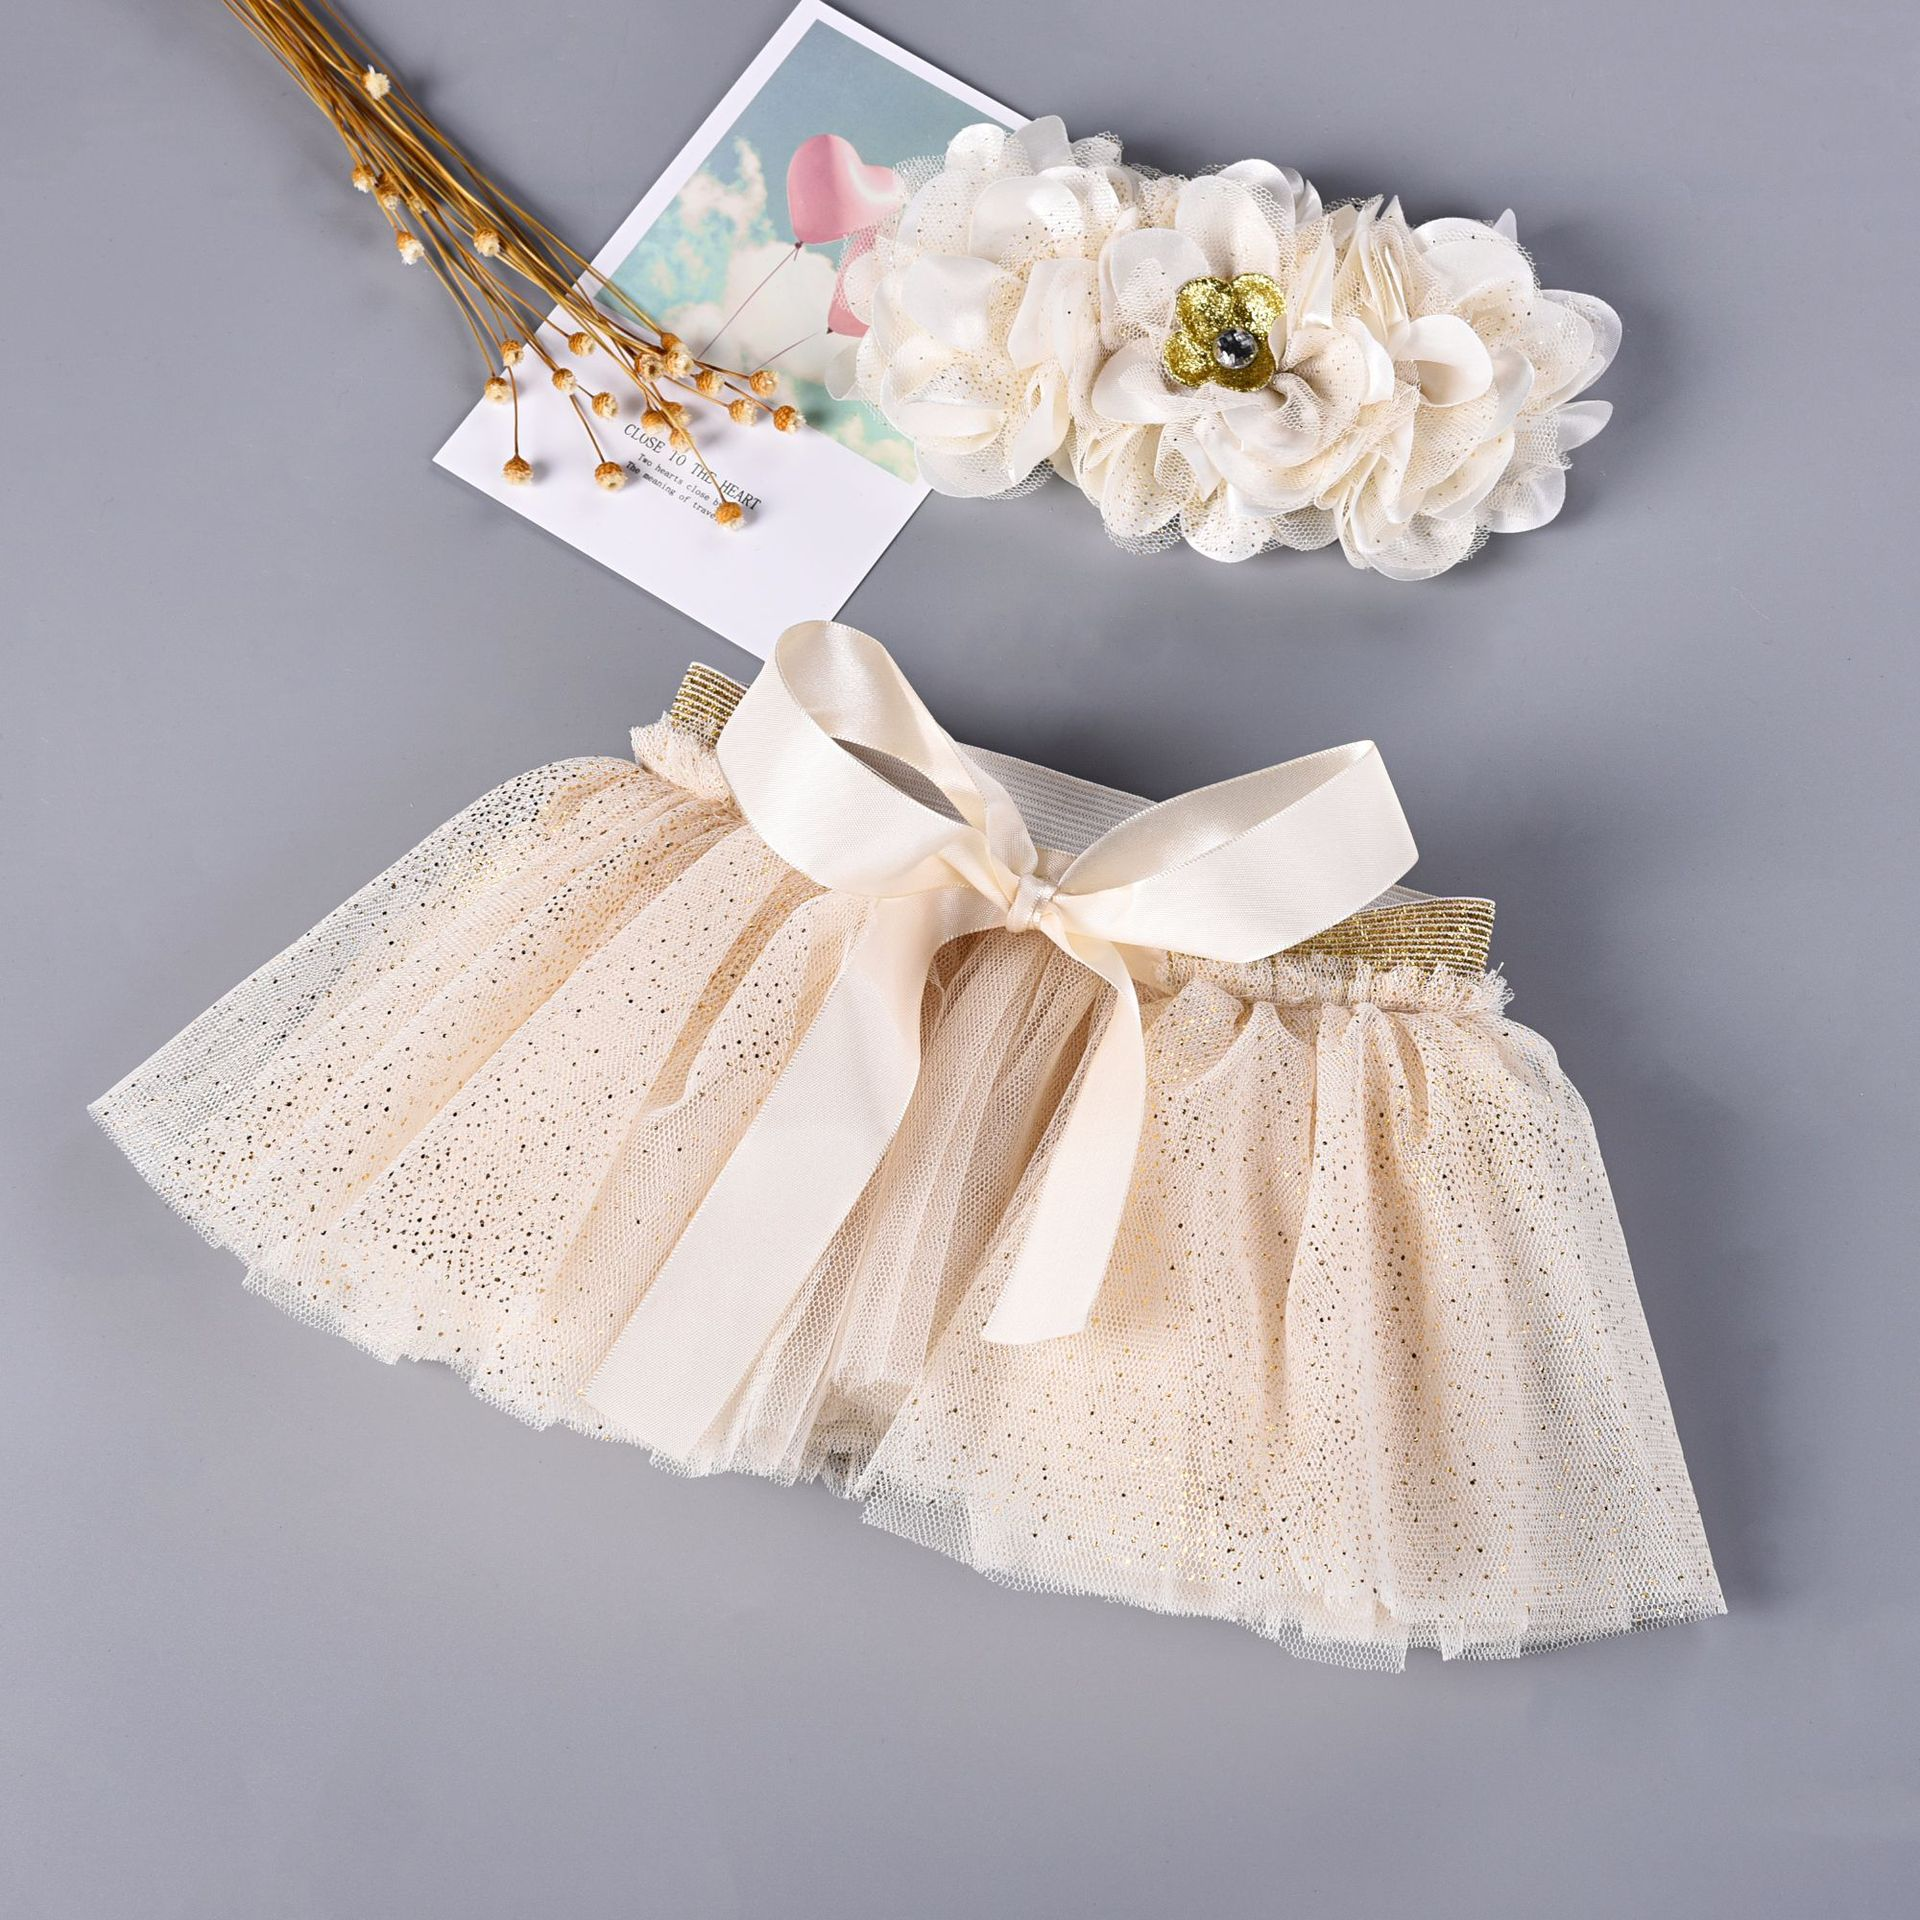 Baby Newborn Photograpghy Props Kids Children Baby White Tutu Skirt + Flower Hair Photos Props Newborn Photography Accessories